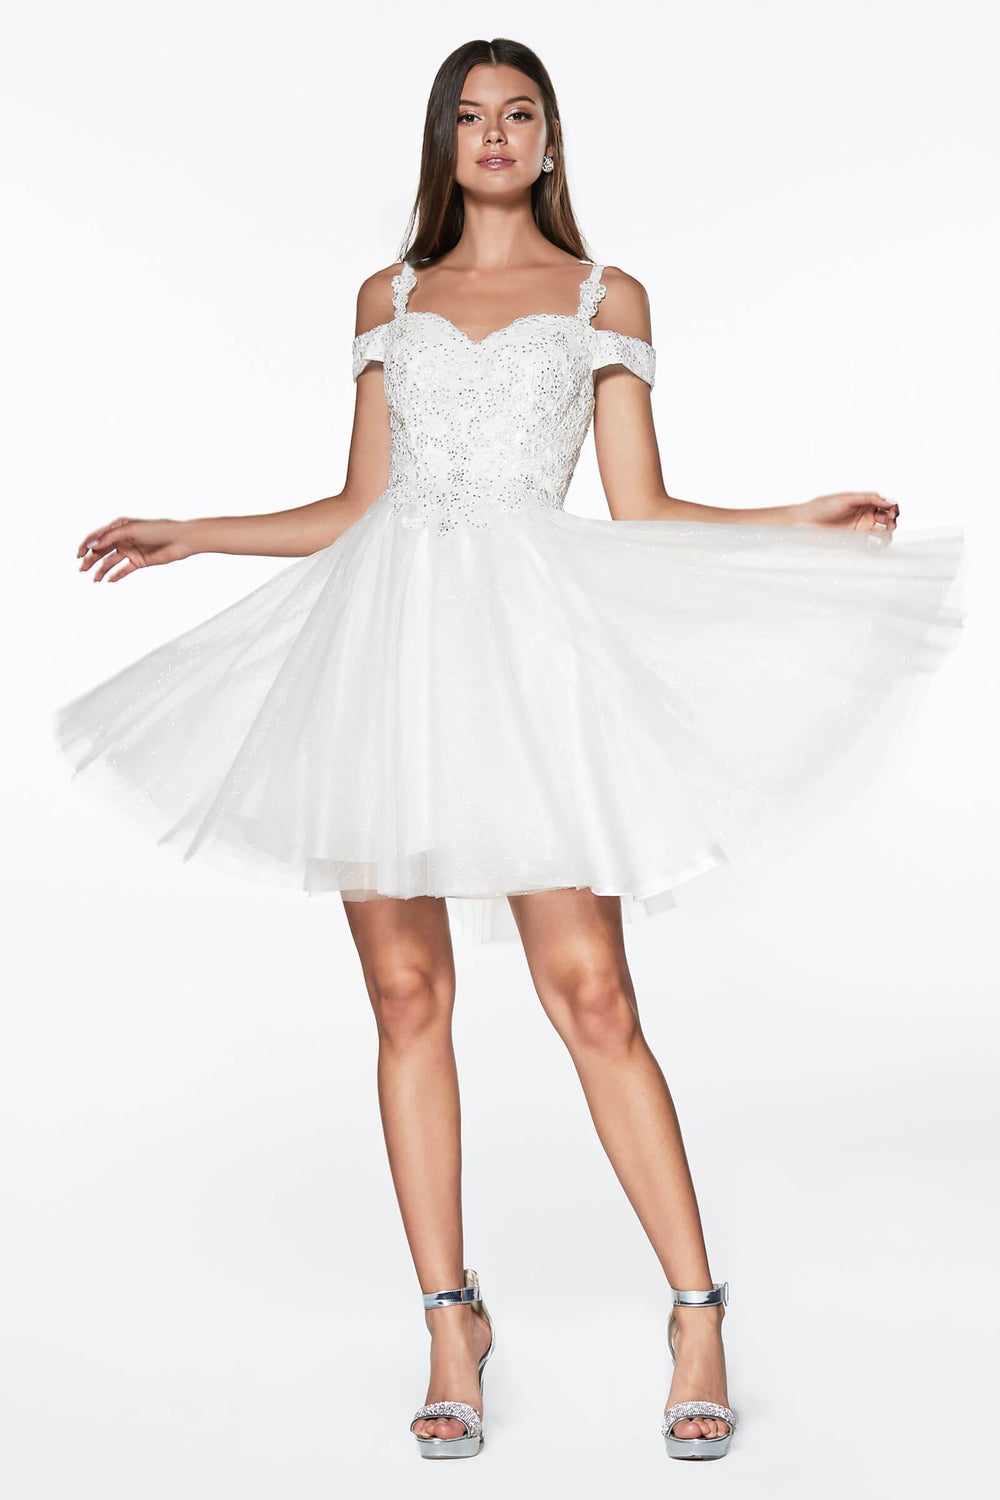 Short Prom Formal Homecoming Dress - The Dress Outlet Off White